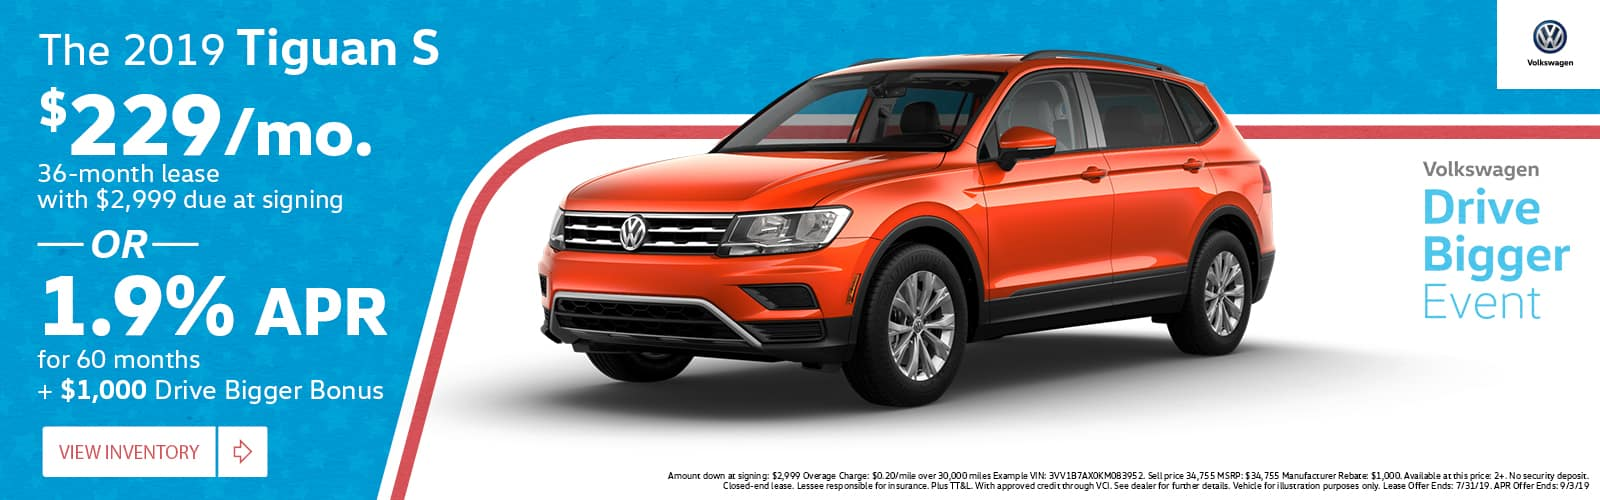 vw-2019-tiguan-beaumont-tx